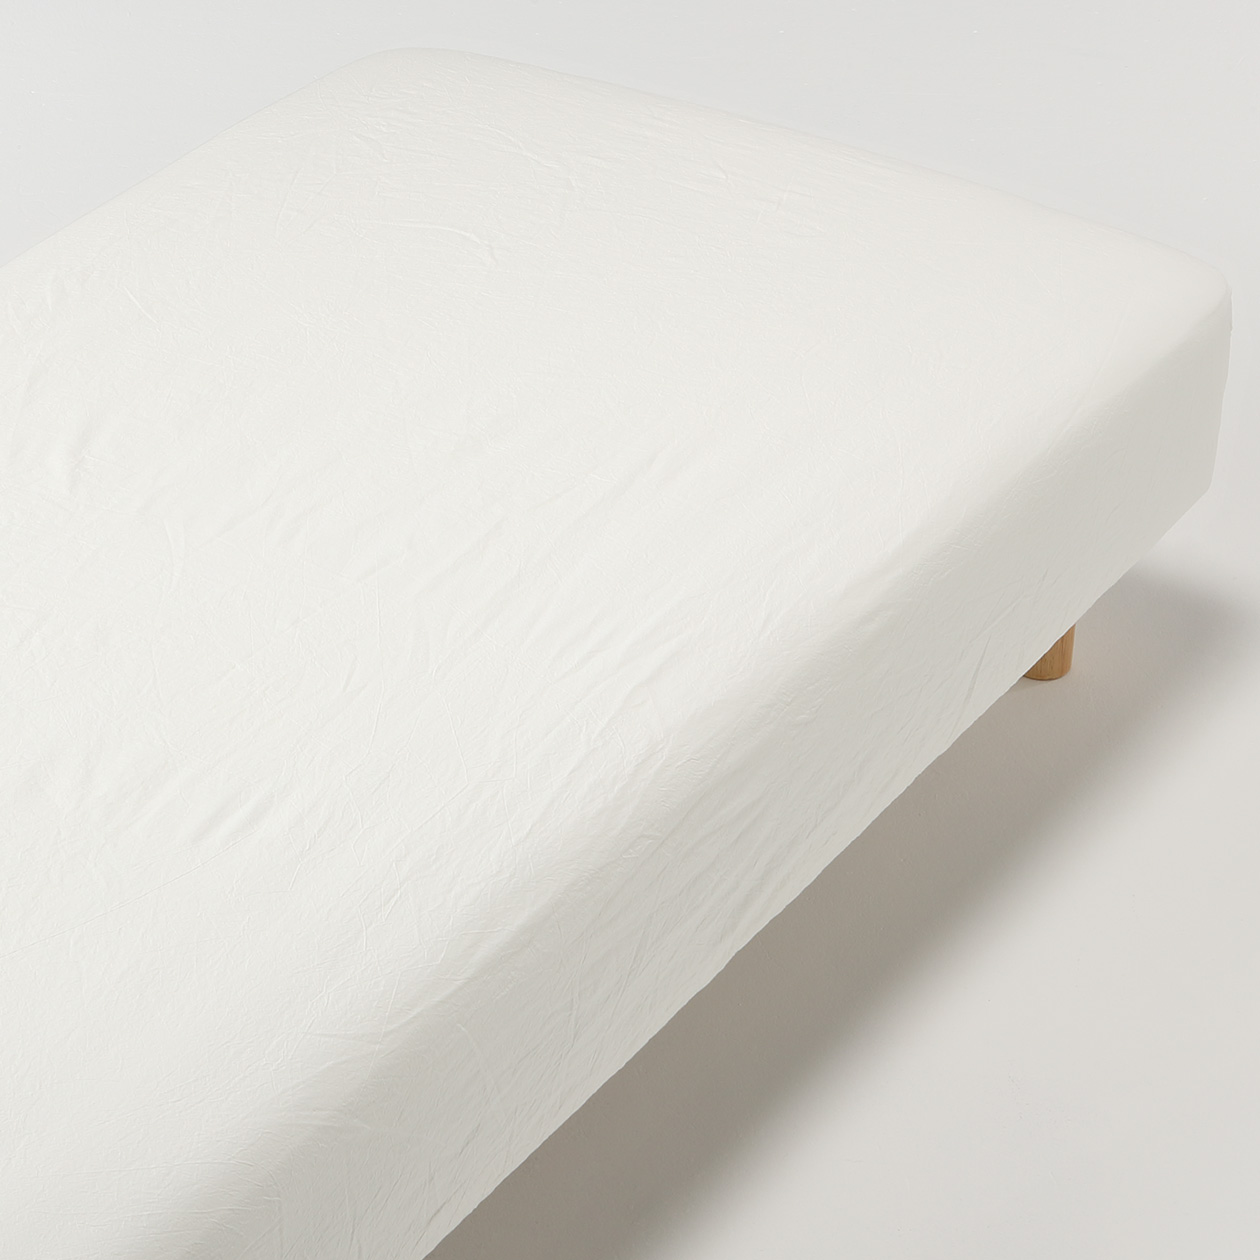 Muji Bed Sheets Organic Washed Cotton Fitted Sheet 無印良品 Muji